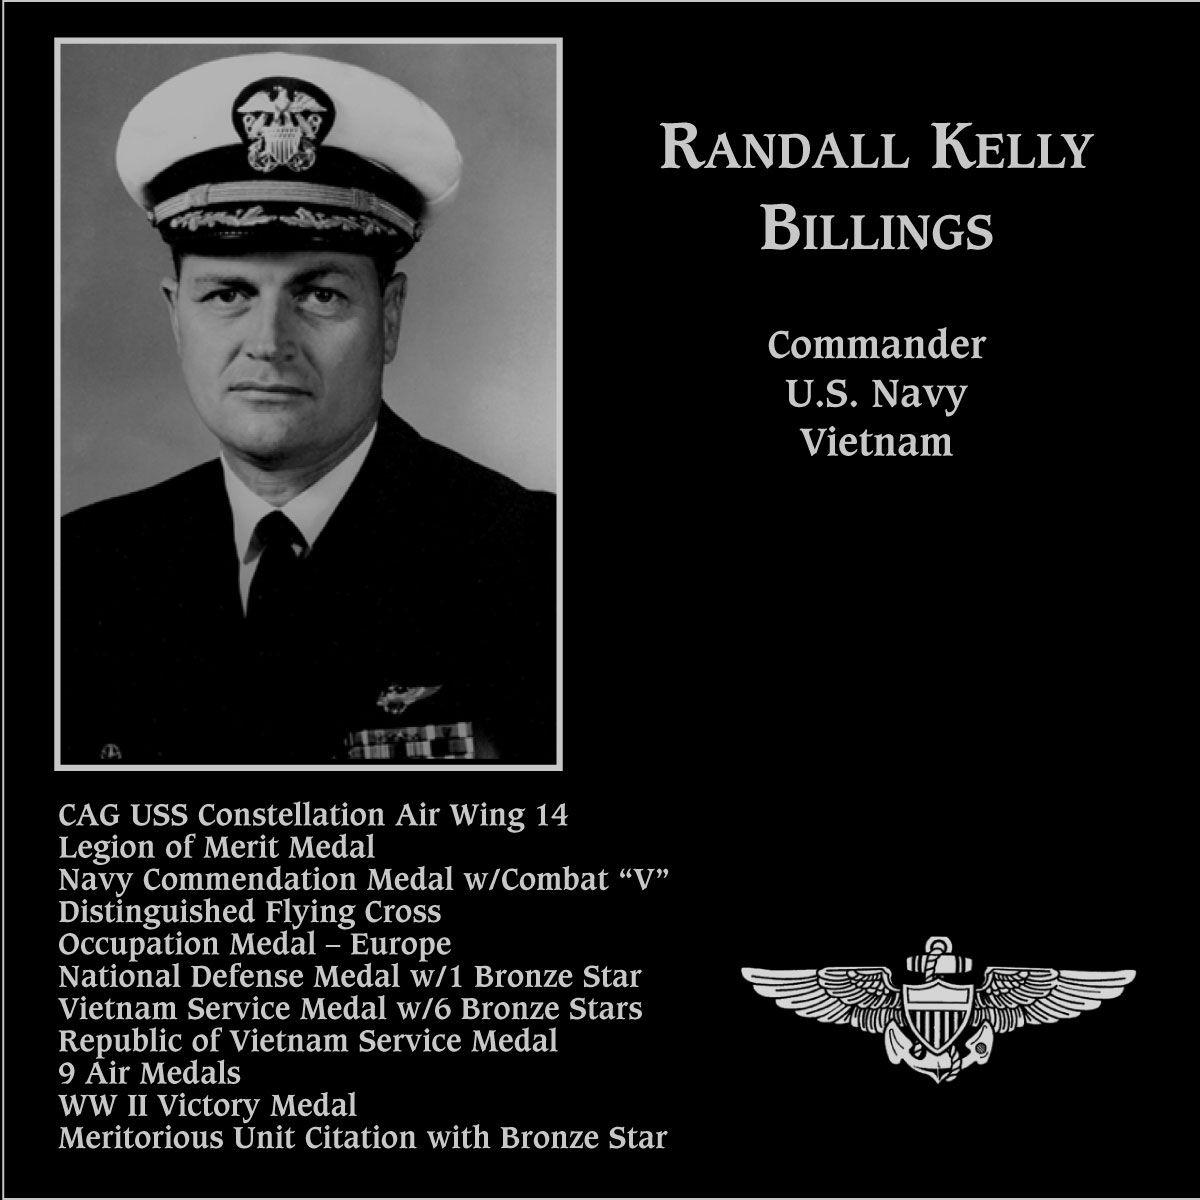 Randall Kelly Billings